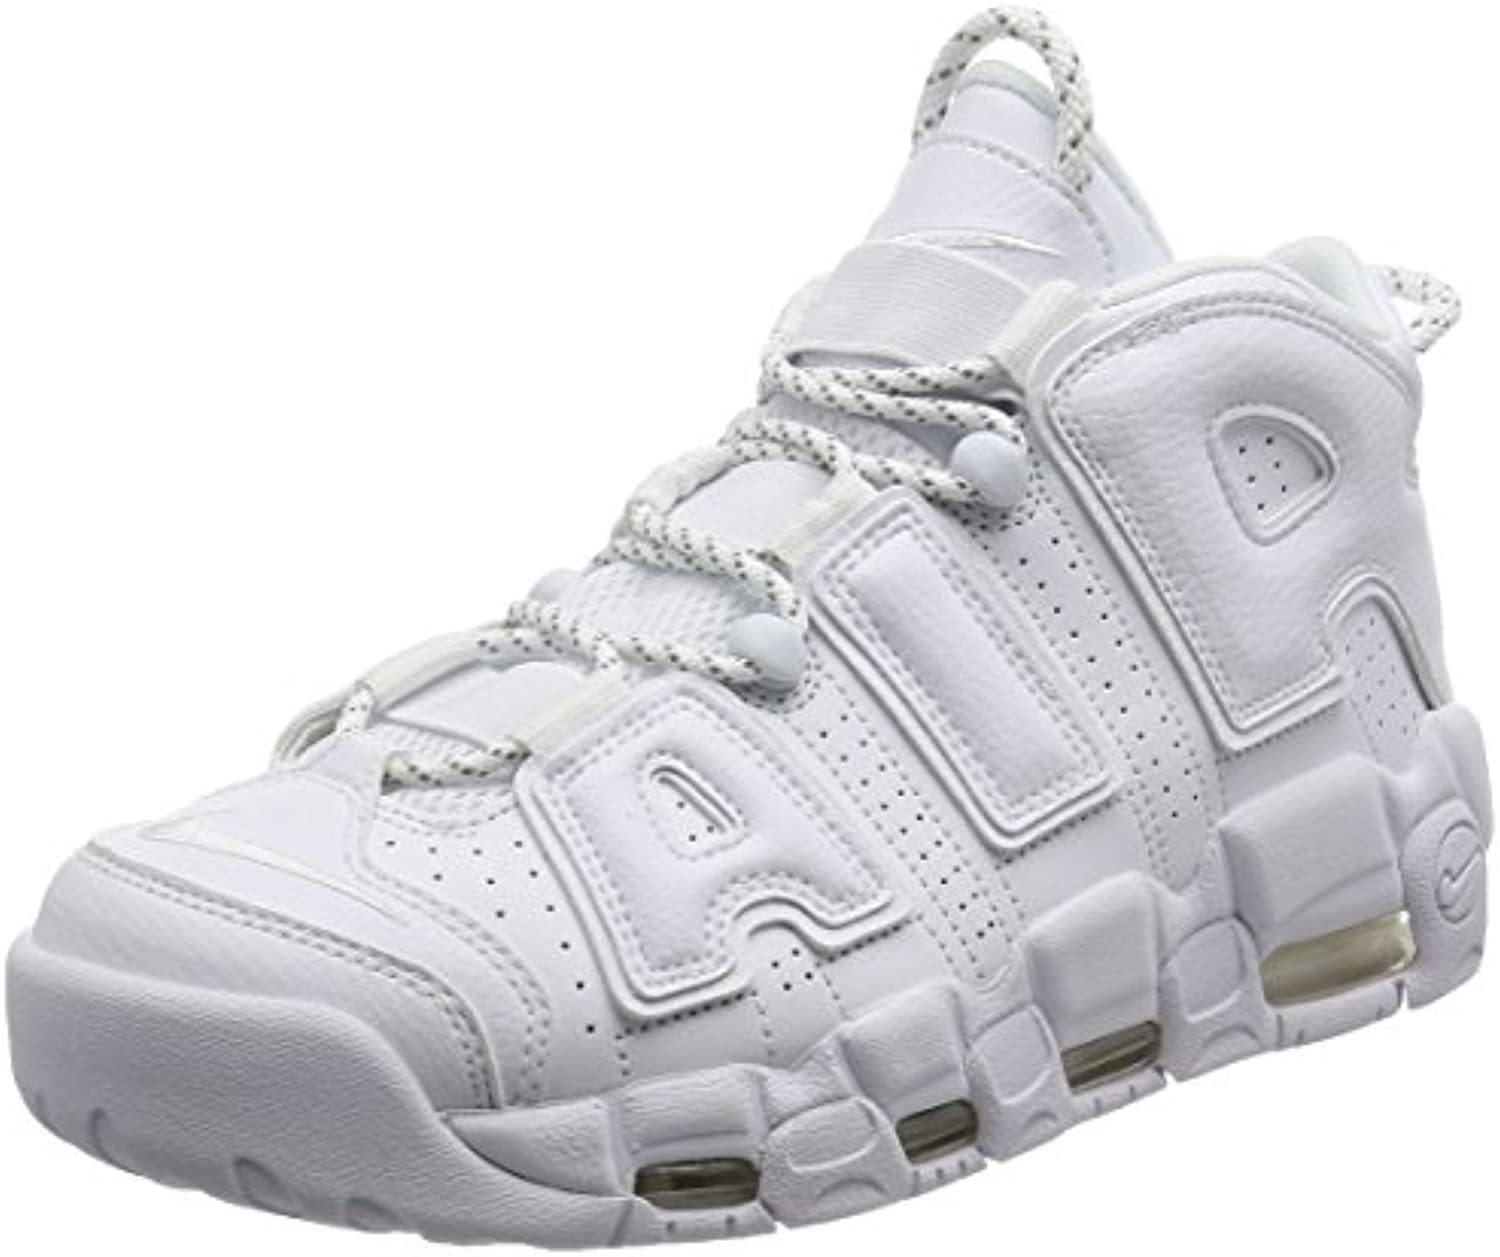 Nike Air More Uptempo  Mens Style: 921948-100 Size: 7.5 M US